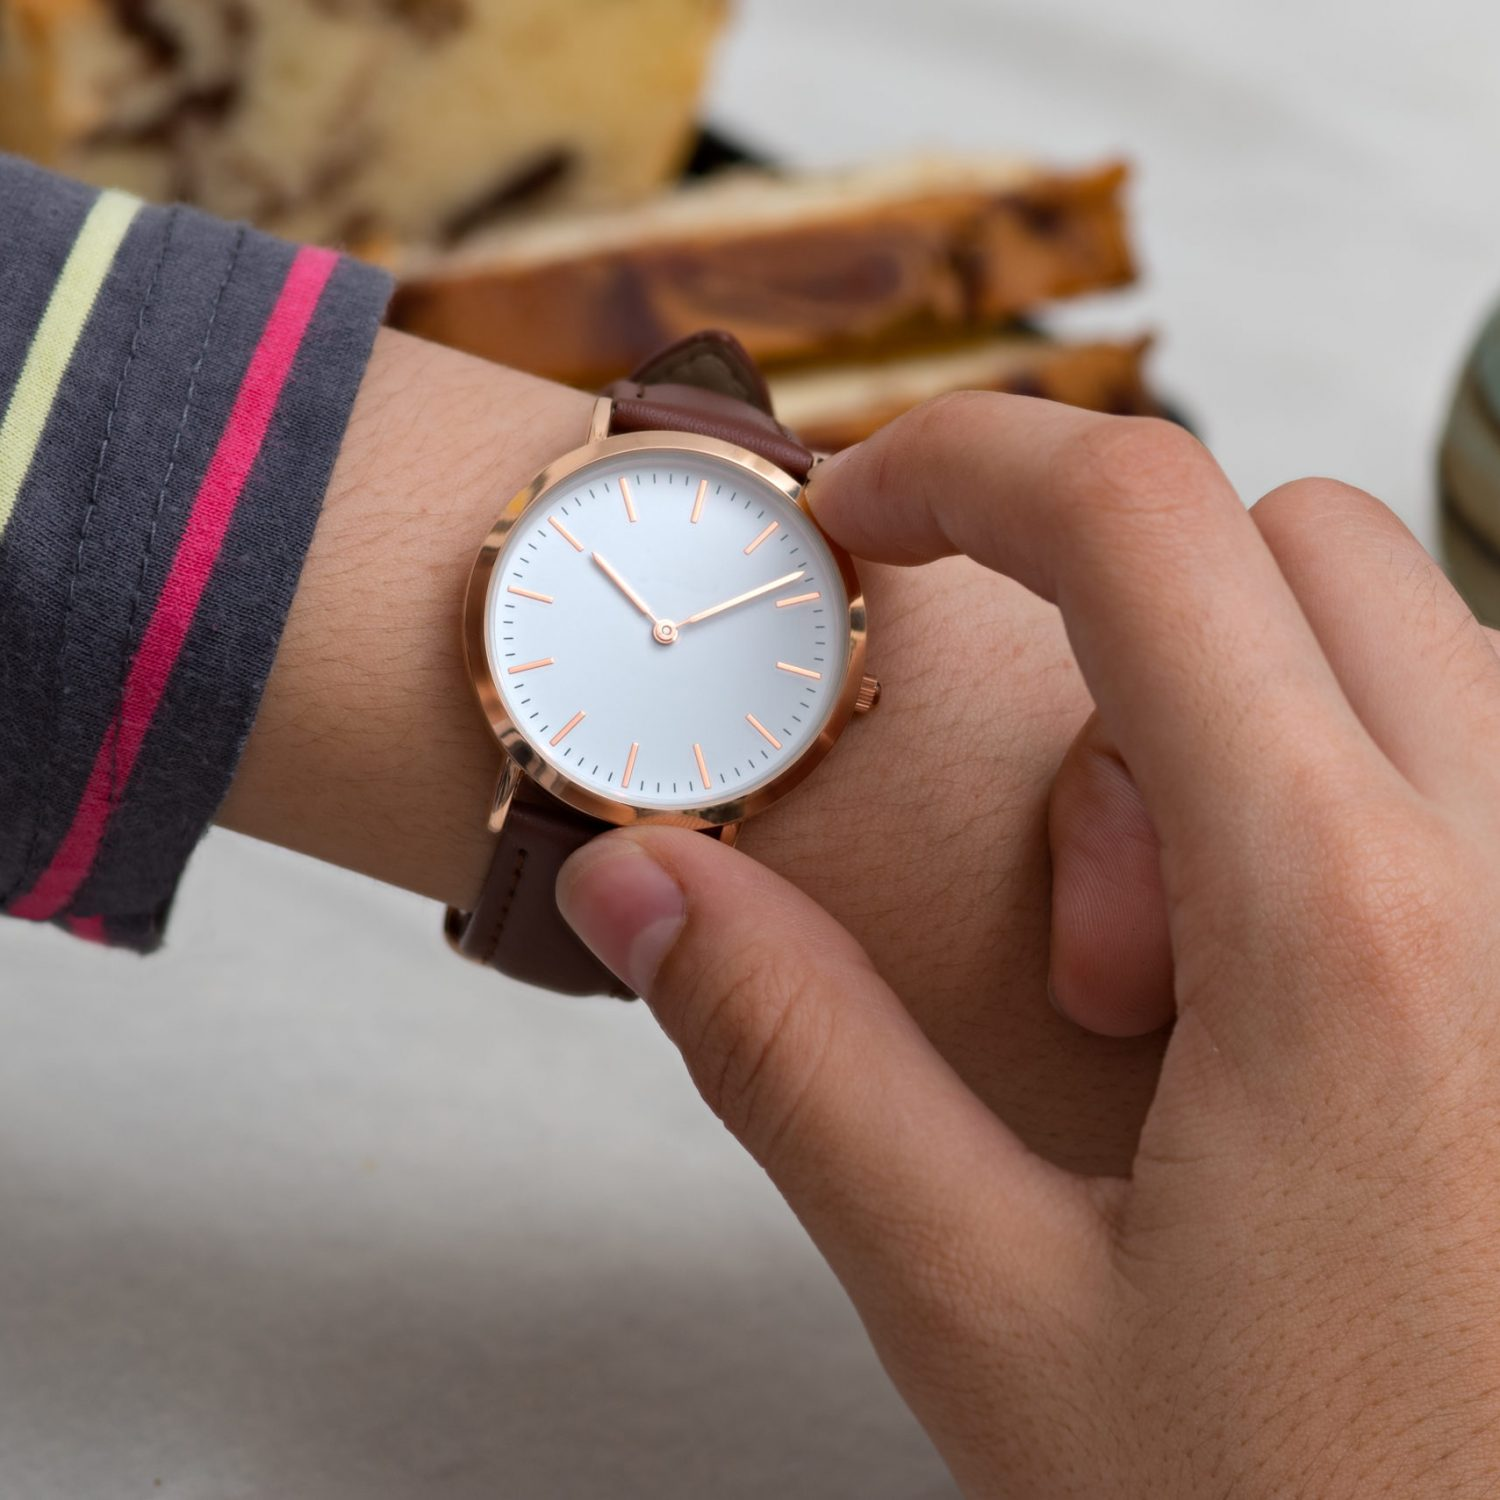 Classic wrist watch on girl's hand in front of hot chocolate and cake